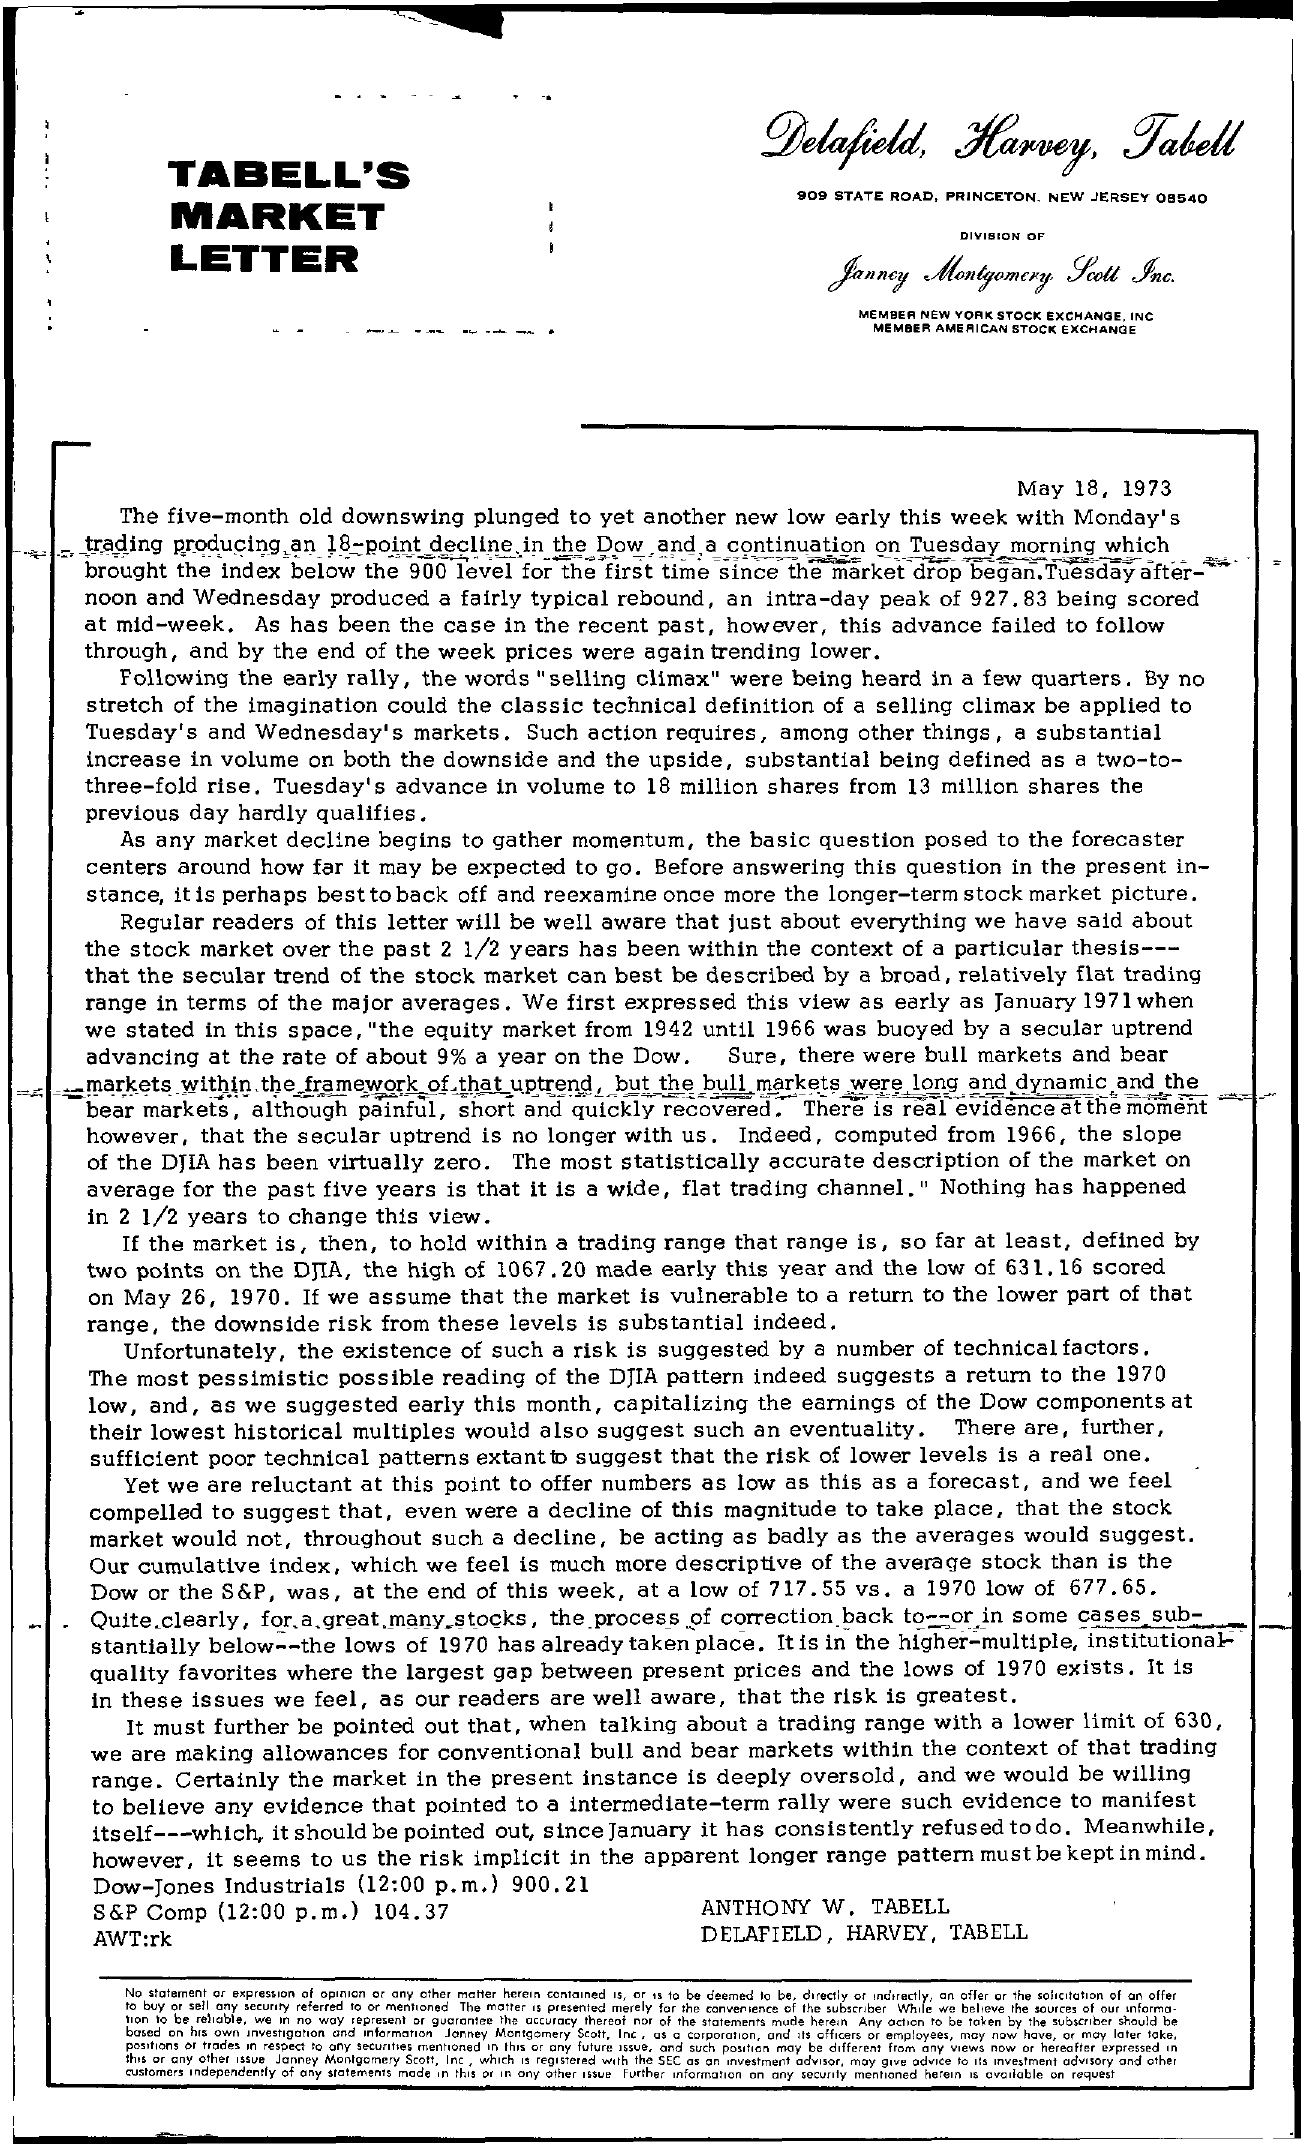 Tabell's Market Letter - May 18, 1973